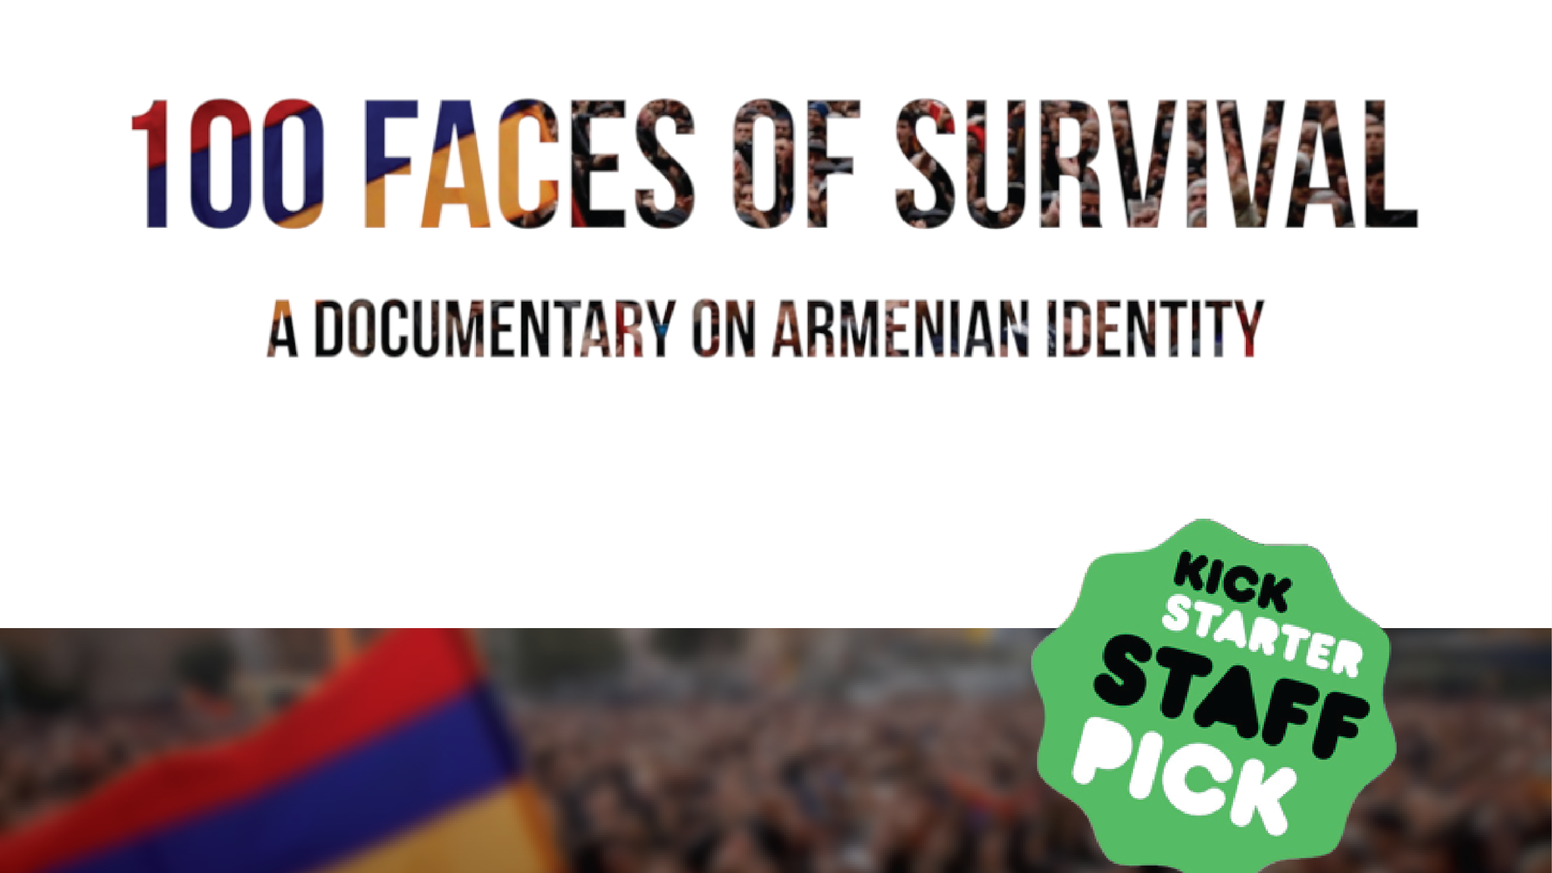 We're making a documentary that asks: 100 years after genocide, what does it mean to be Armenian?